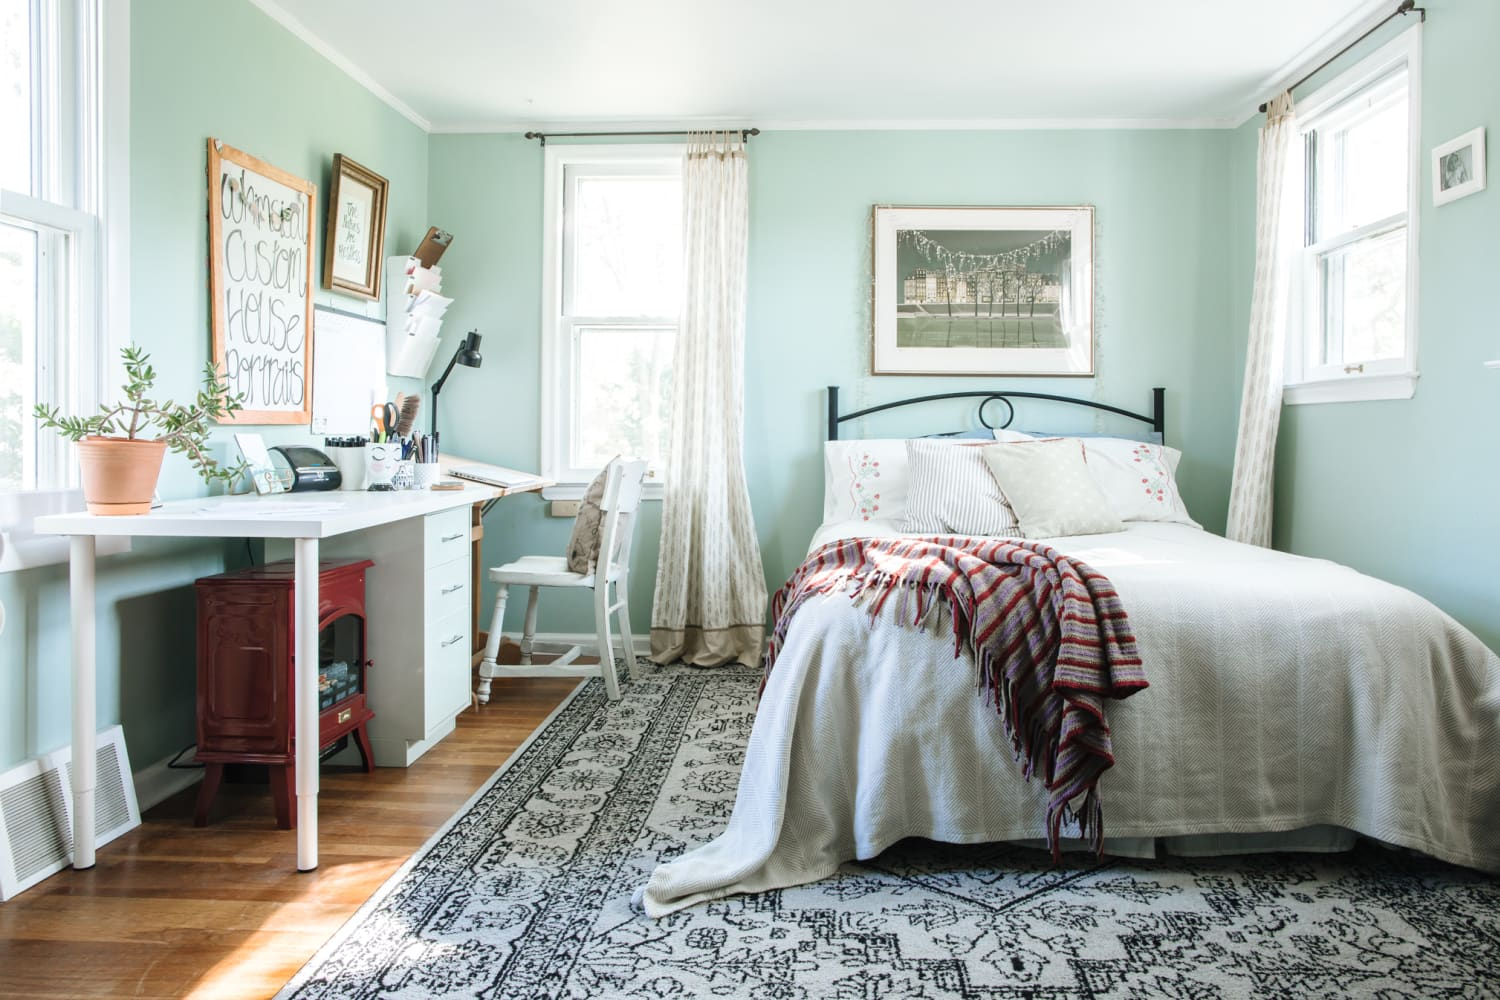 Don't Think You Can Become Someone Who Makes Their Bed Every Day? These Therapists Say Otherwise